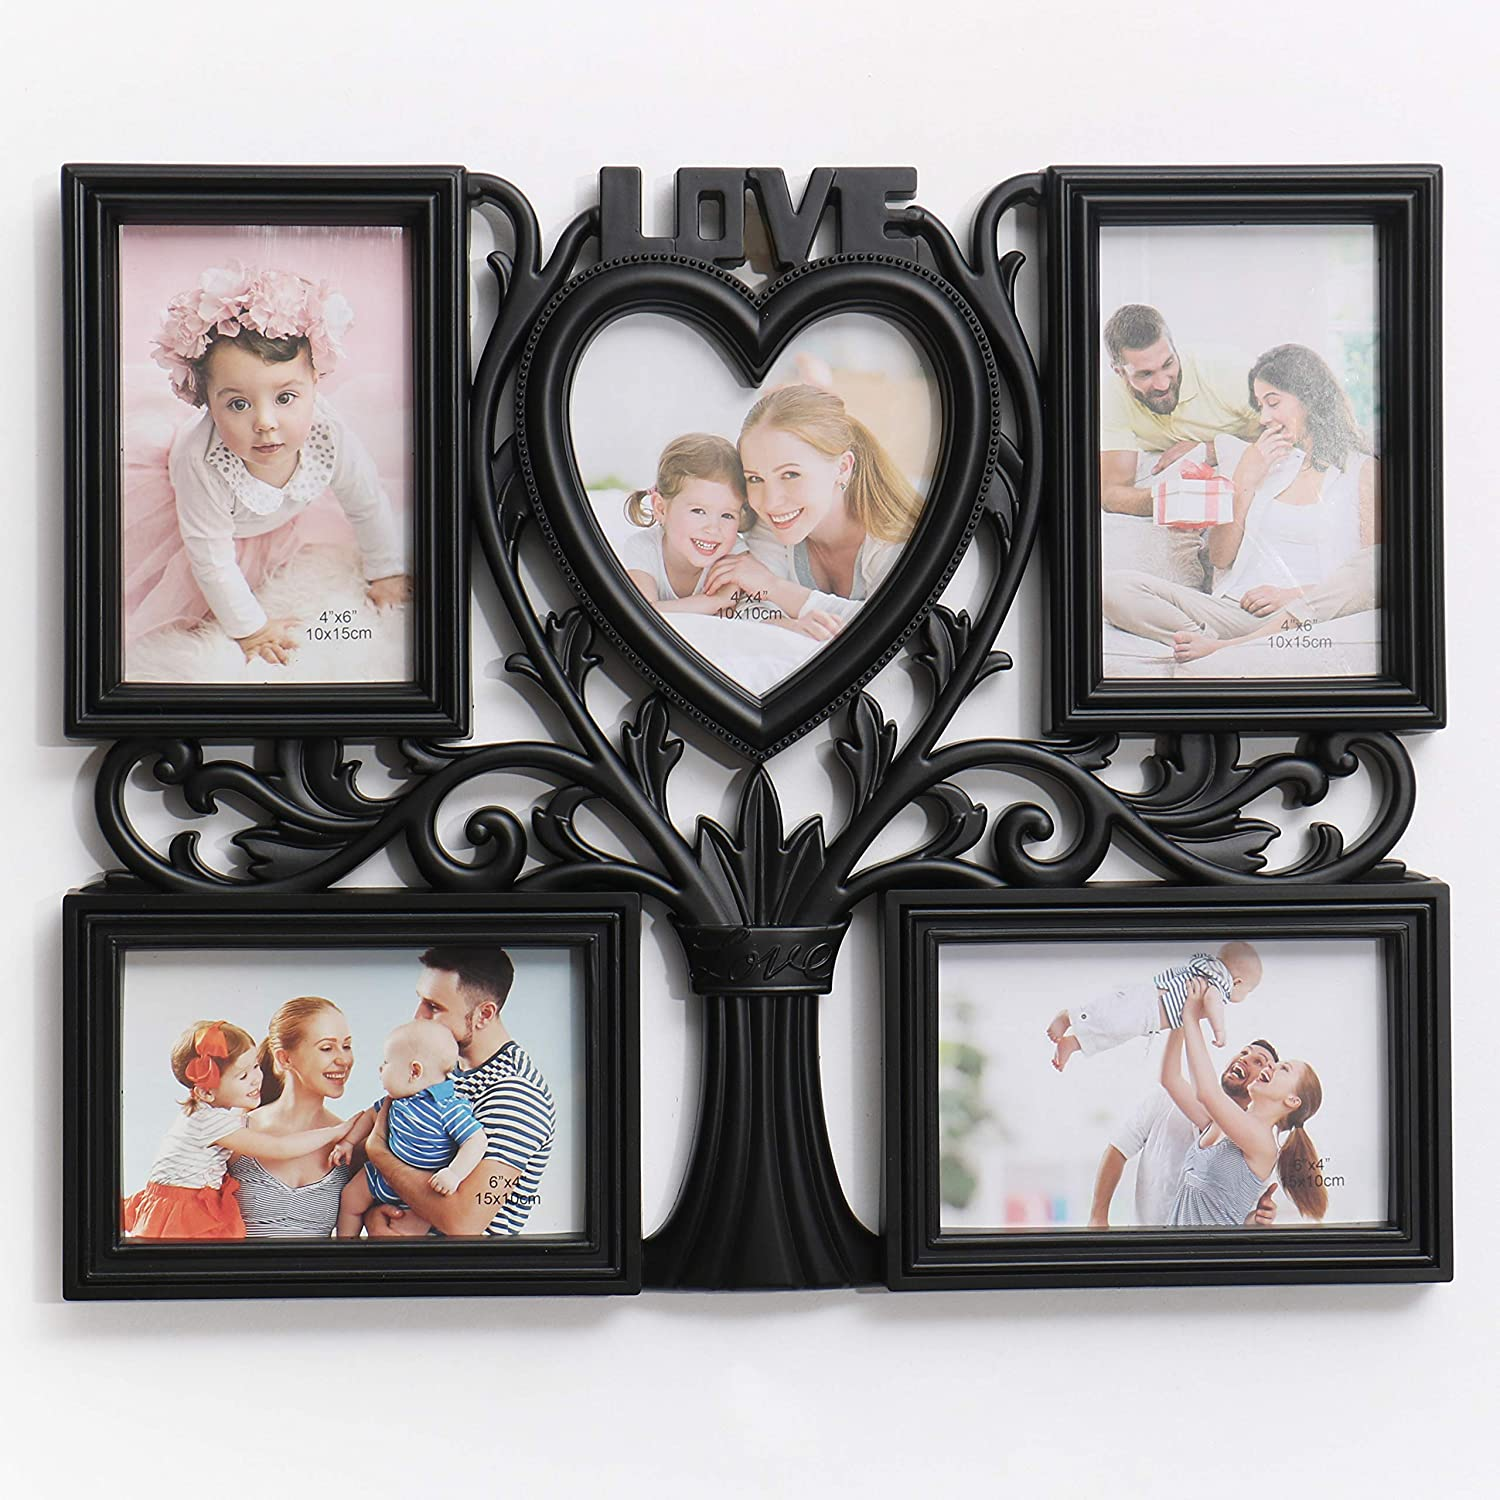 Super Holiday 4x6 Picture Frames (5 Pack), Contemporary Frame Set Wall Mount or Table Top Prosperity Collection(Black)